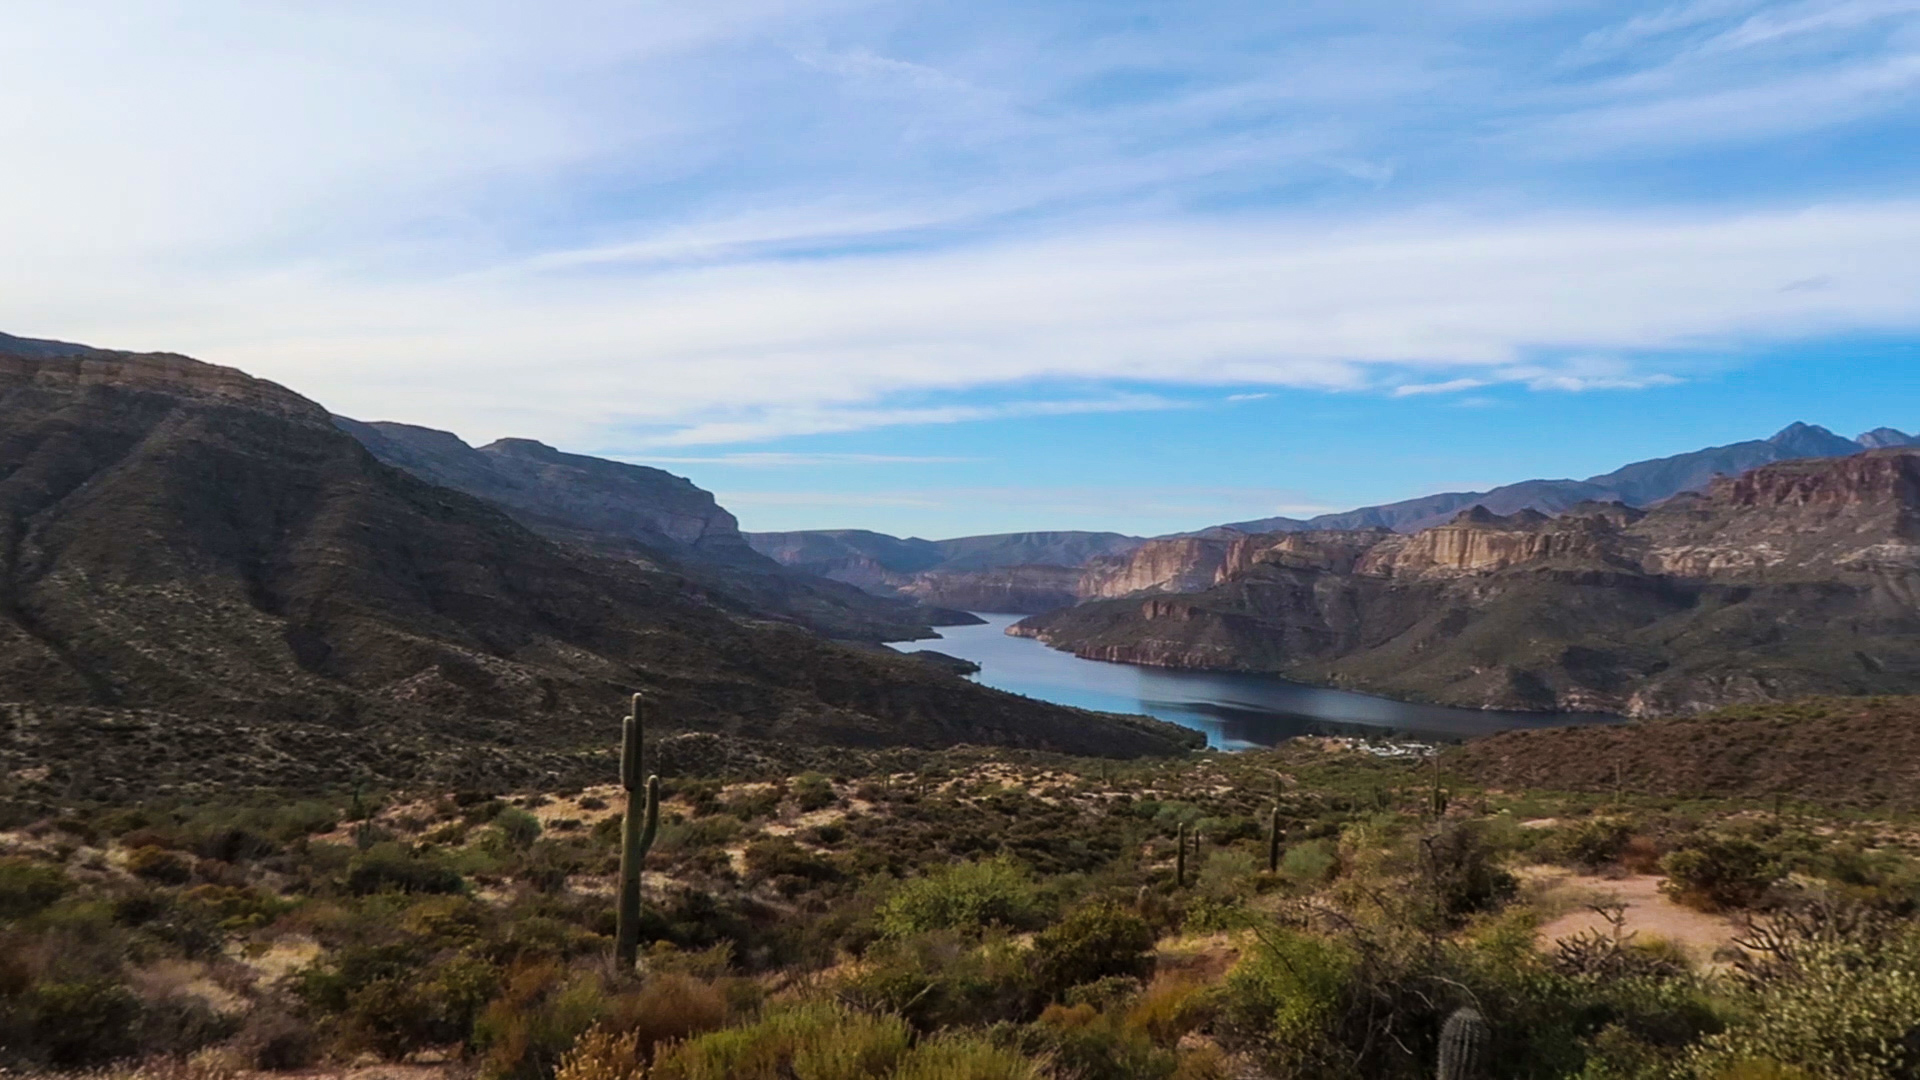 View on the Apache Trail